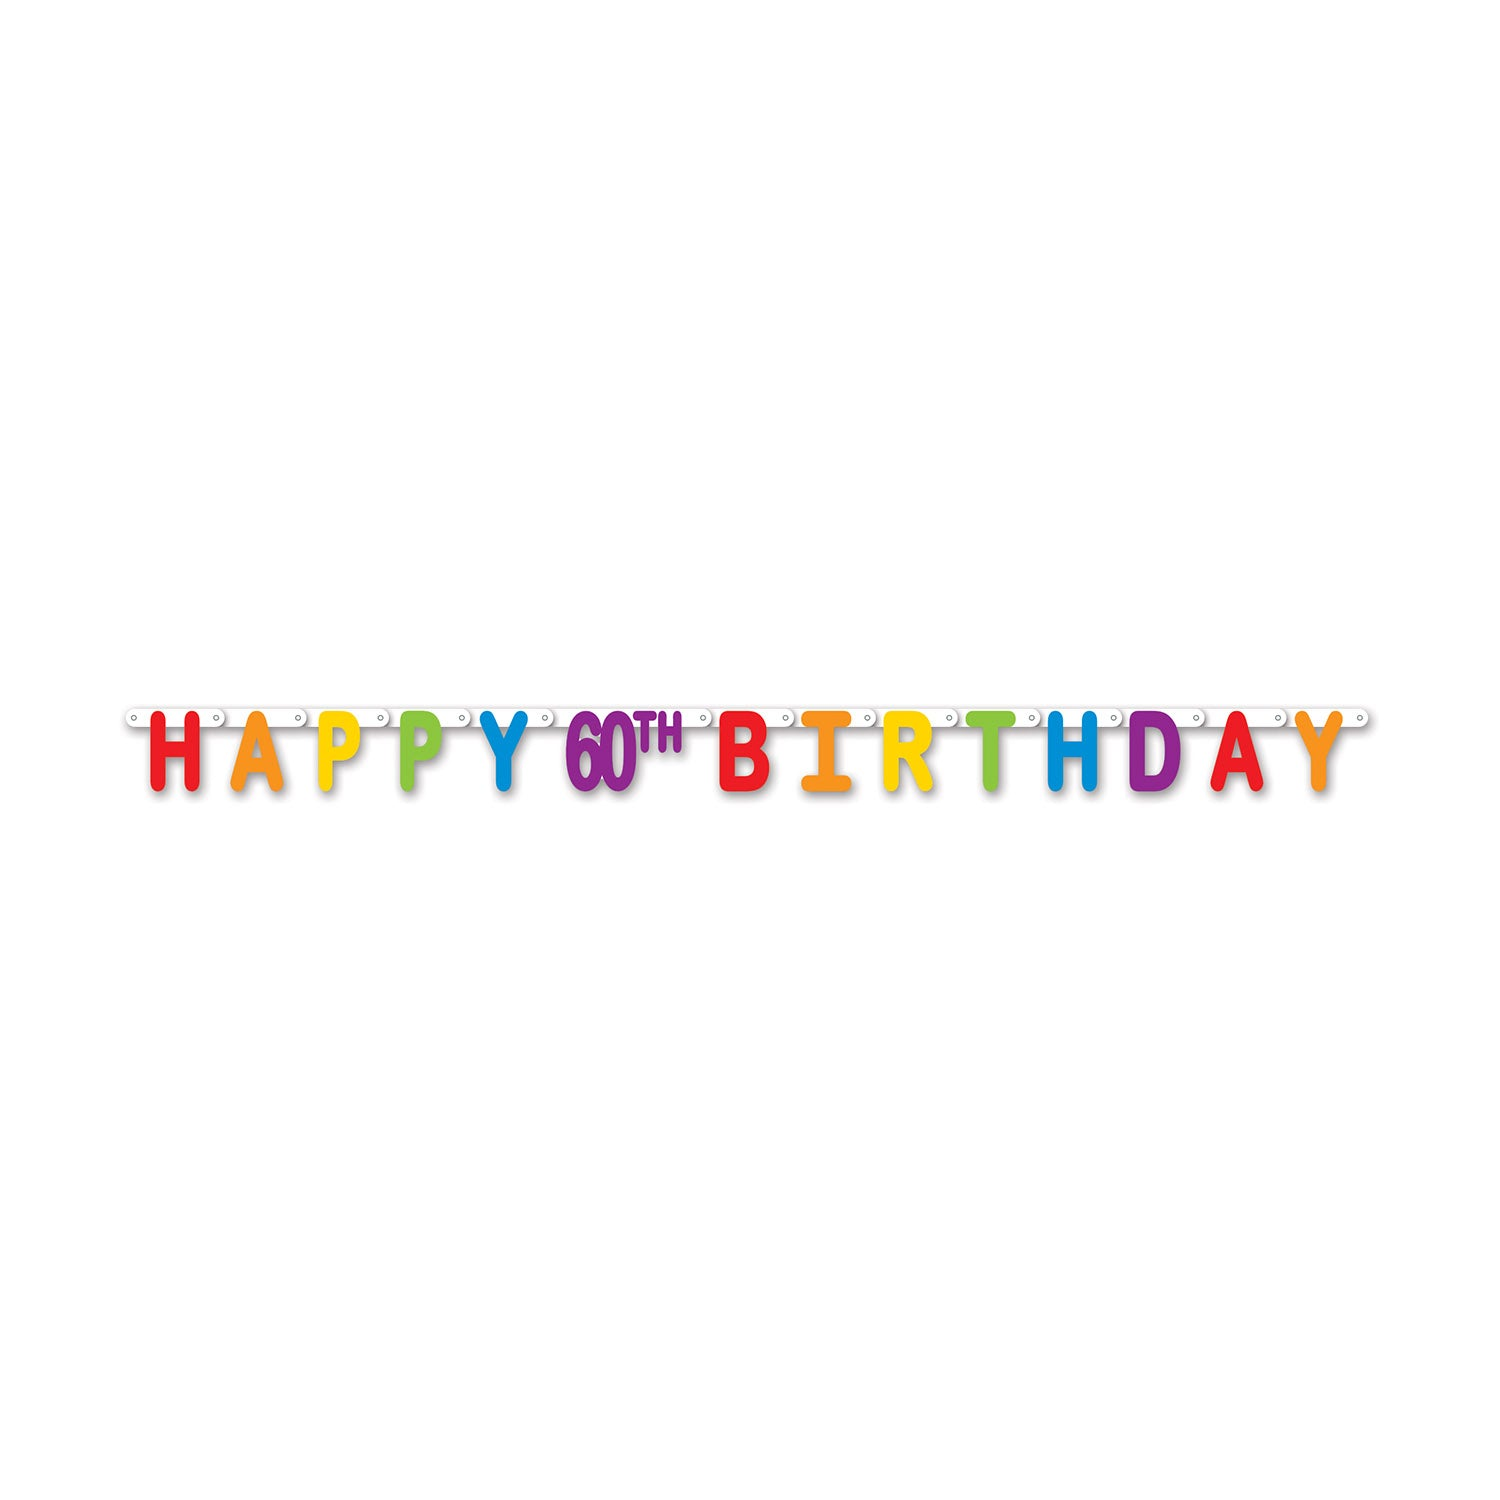 Happy 60th Birthday Streamer Party Supplies Decorations The Beistle Company